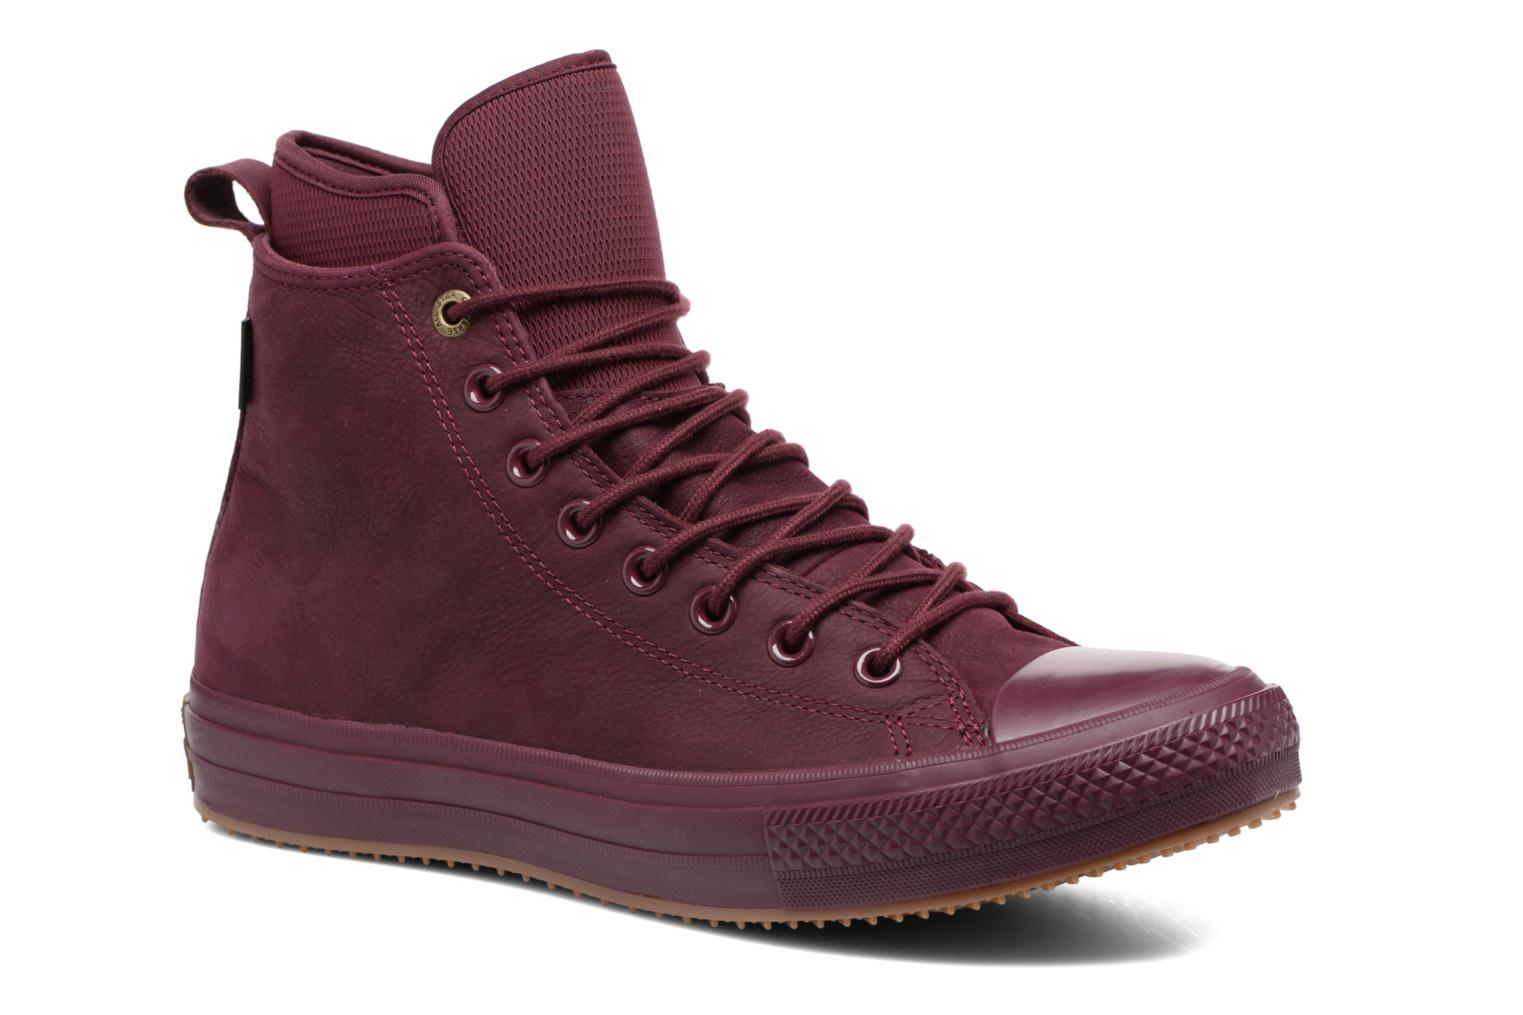 Converse All Star II Boot Chaussures Dark Sangria/Gum 6TYQqsIiI